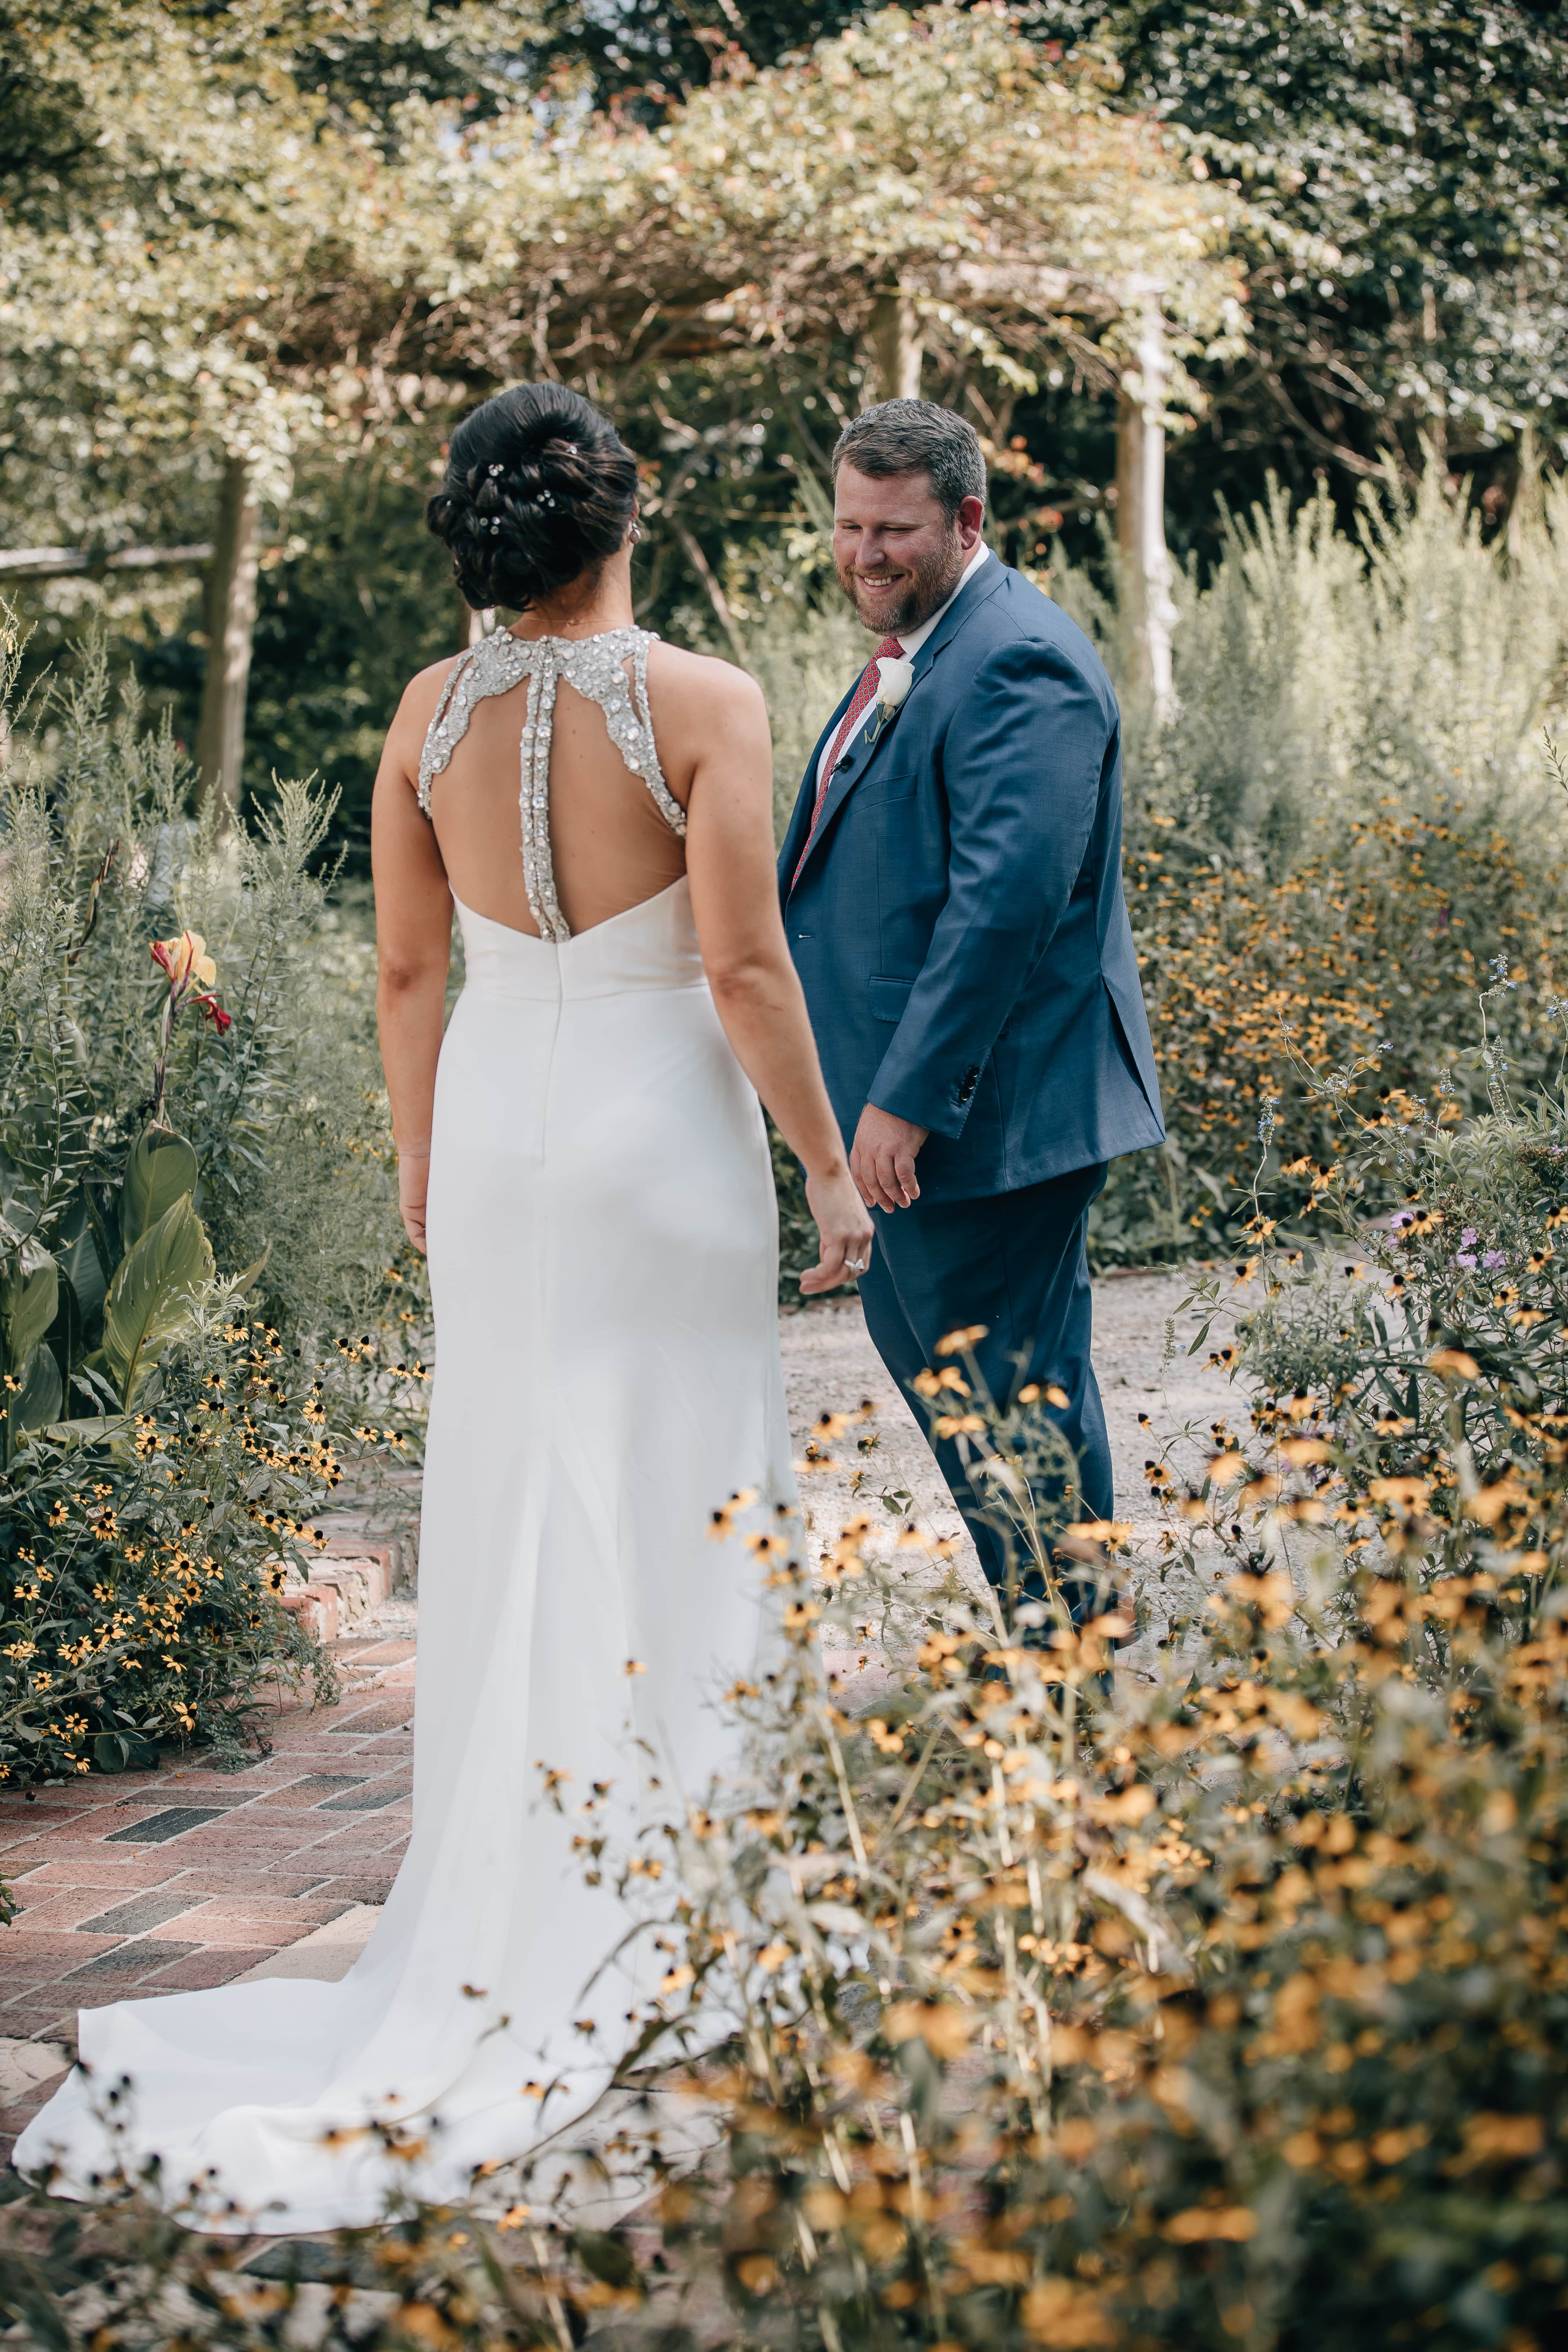 Groom sees is bride for the first time among the gardens of The Ivy Place captured by Shutter Owl Photography